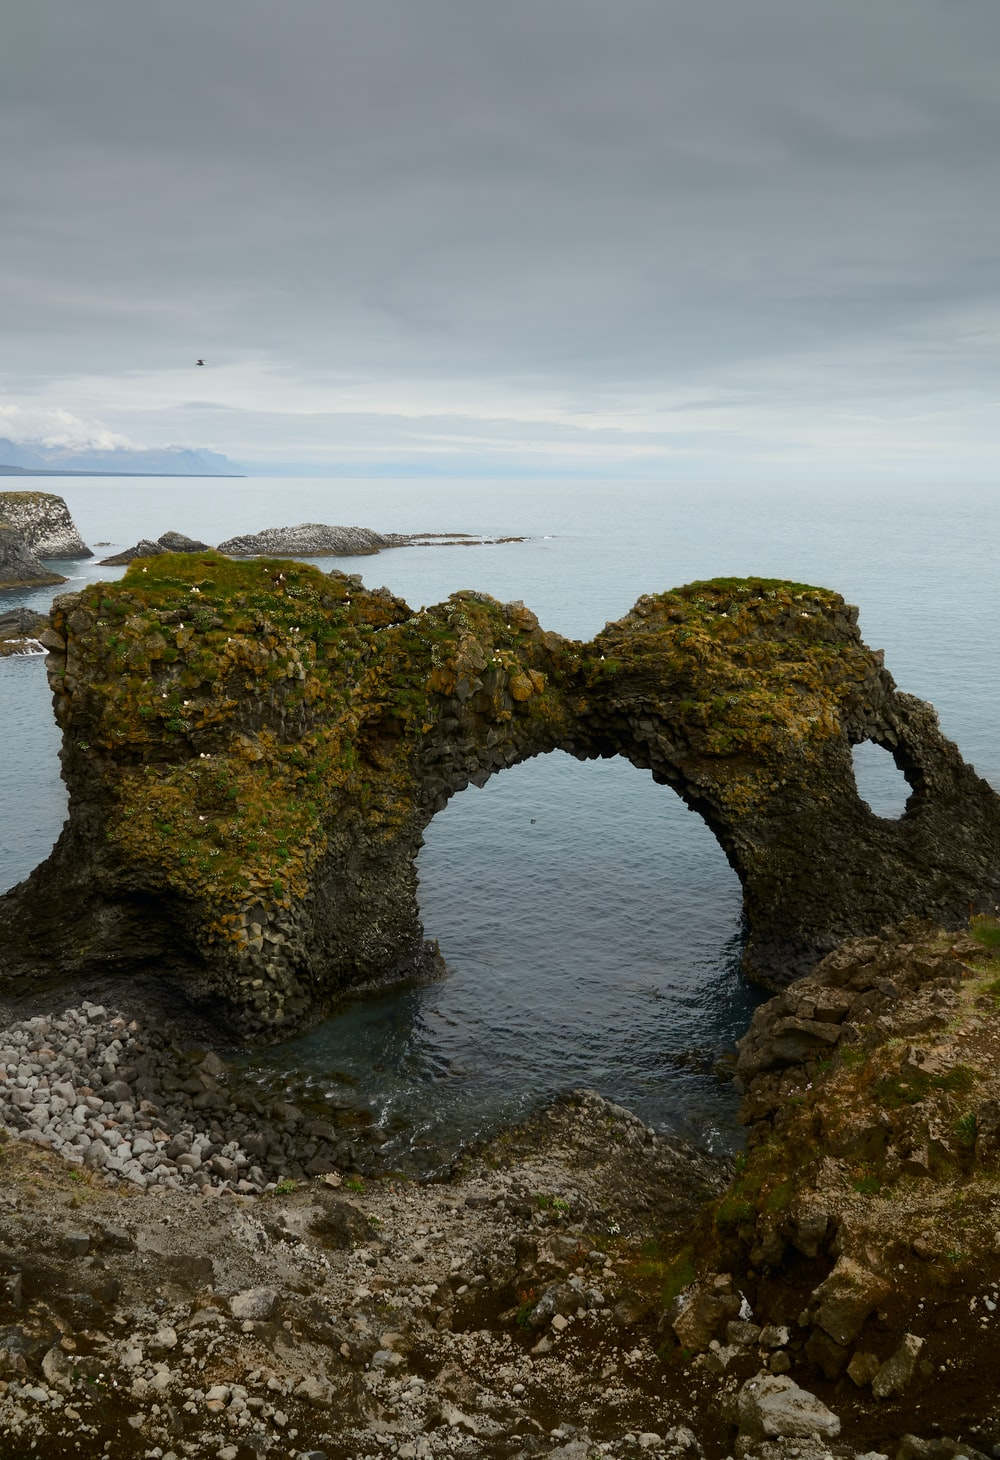 green moss covered rock formation on sea under white clouds during daytime